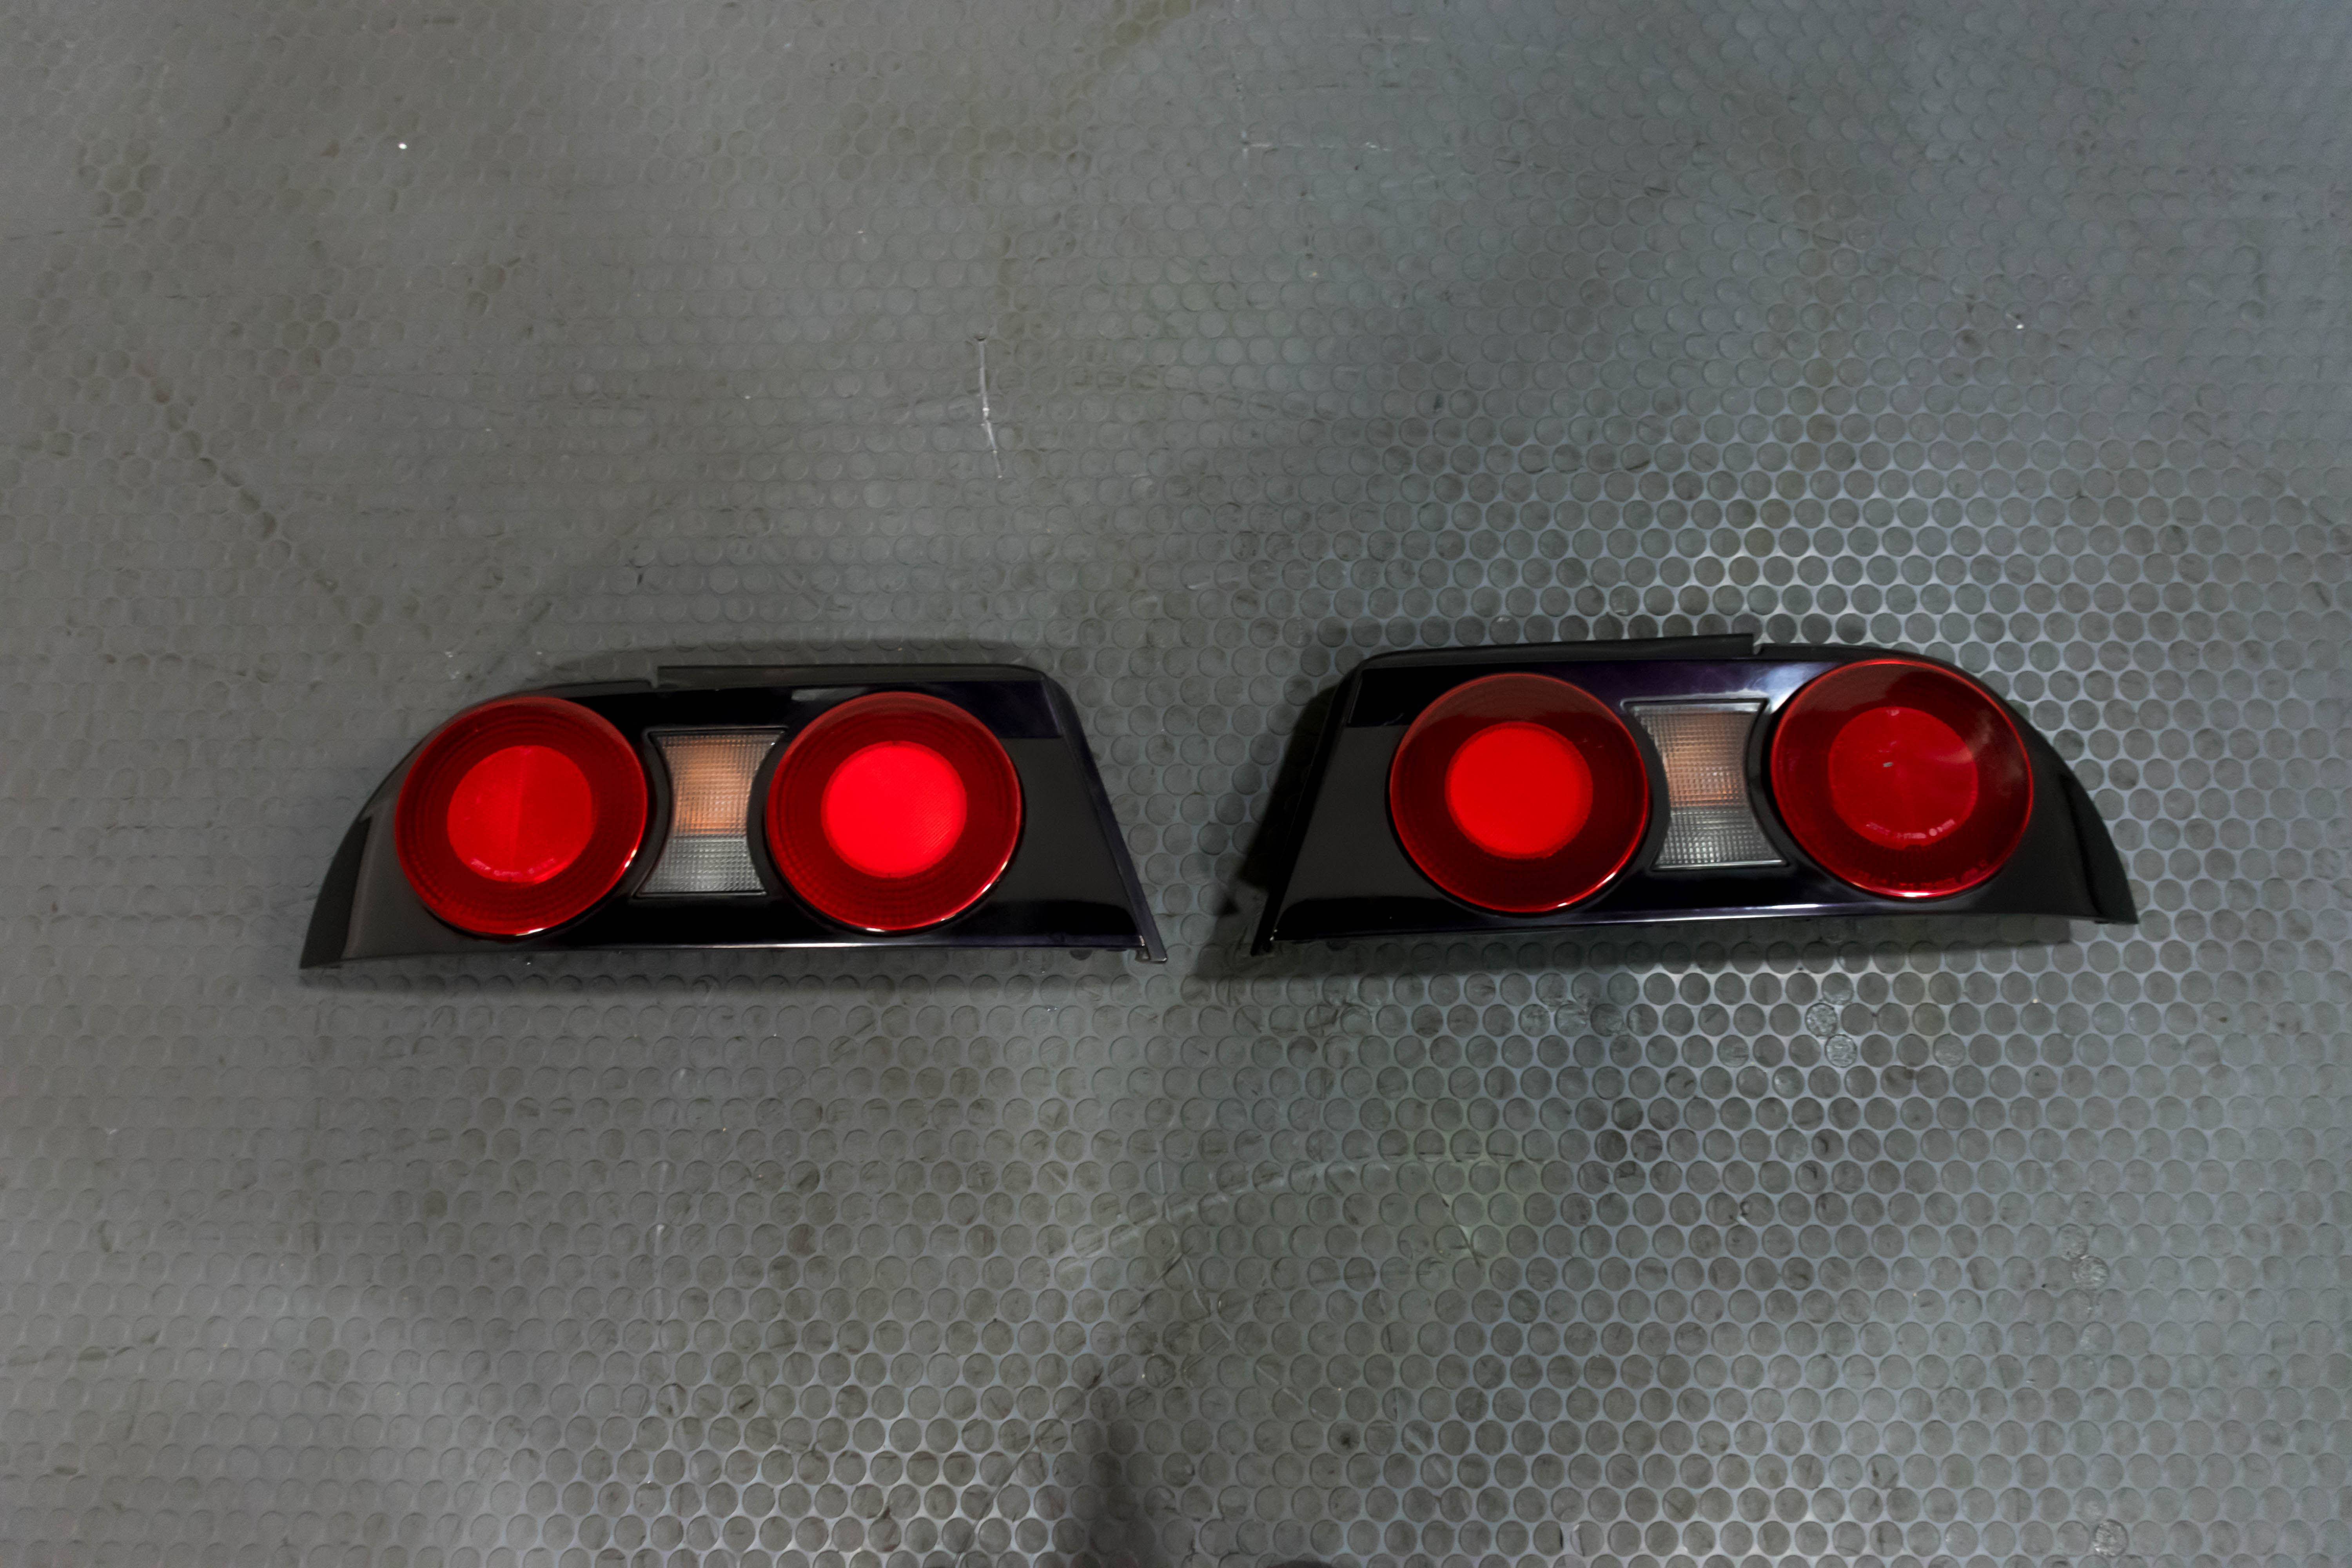 Used Jdm Super Rare Midnight Purple Tail Lights That Came